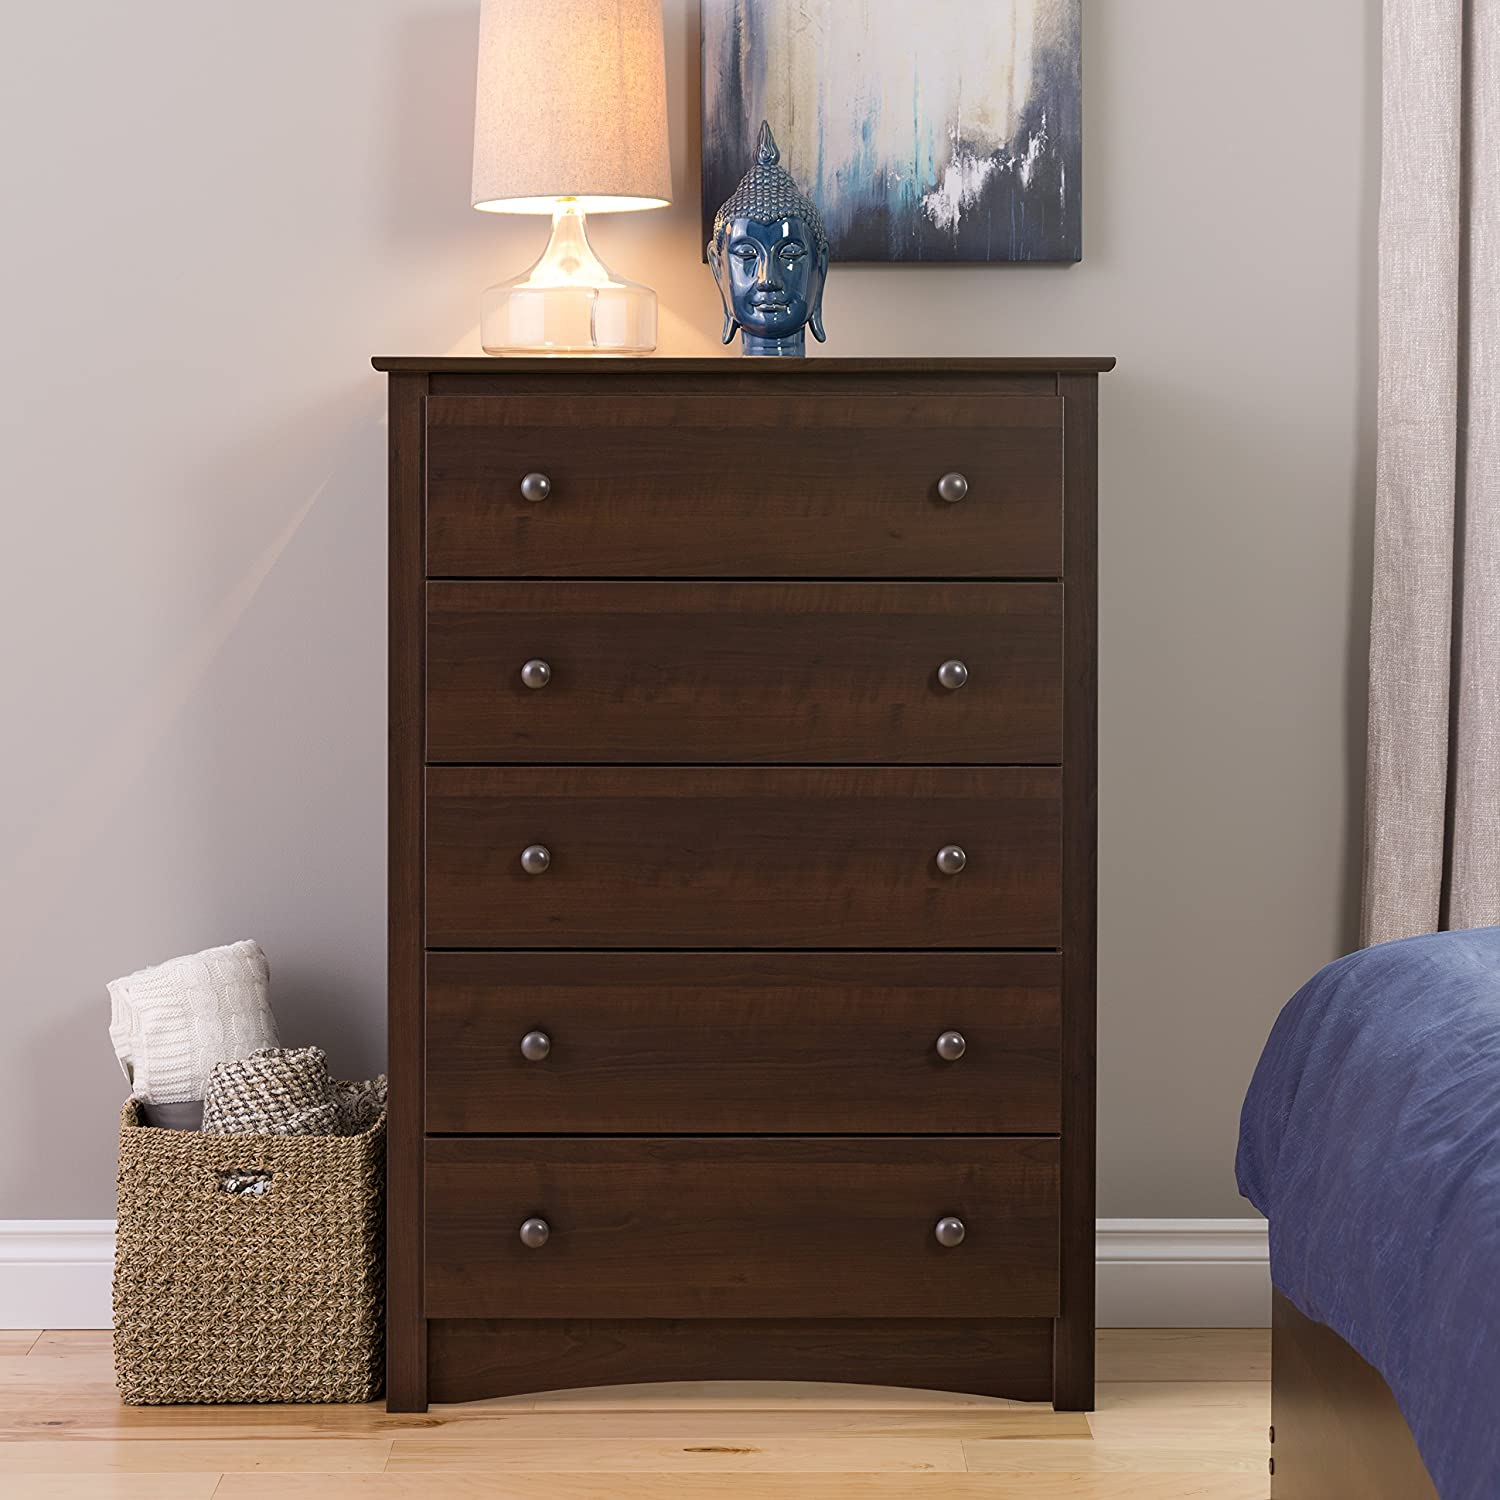 shown dresser drawer situ category moser furniture lr thos here jewelry with fnamemoser sevendrawersidechest dressers bedroom product bedroomcases cases